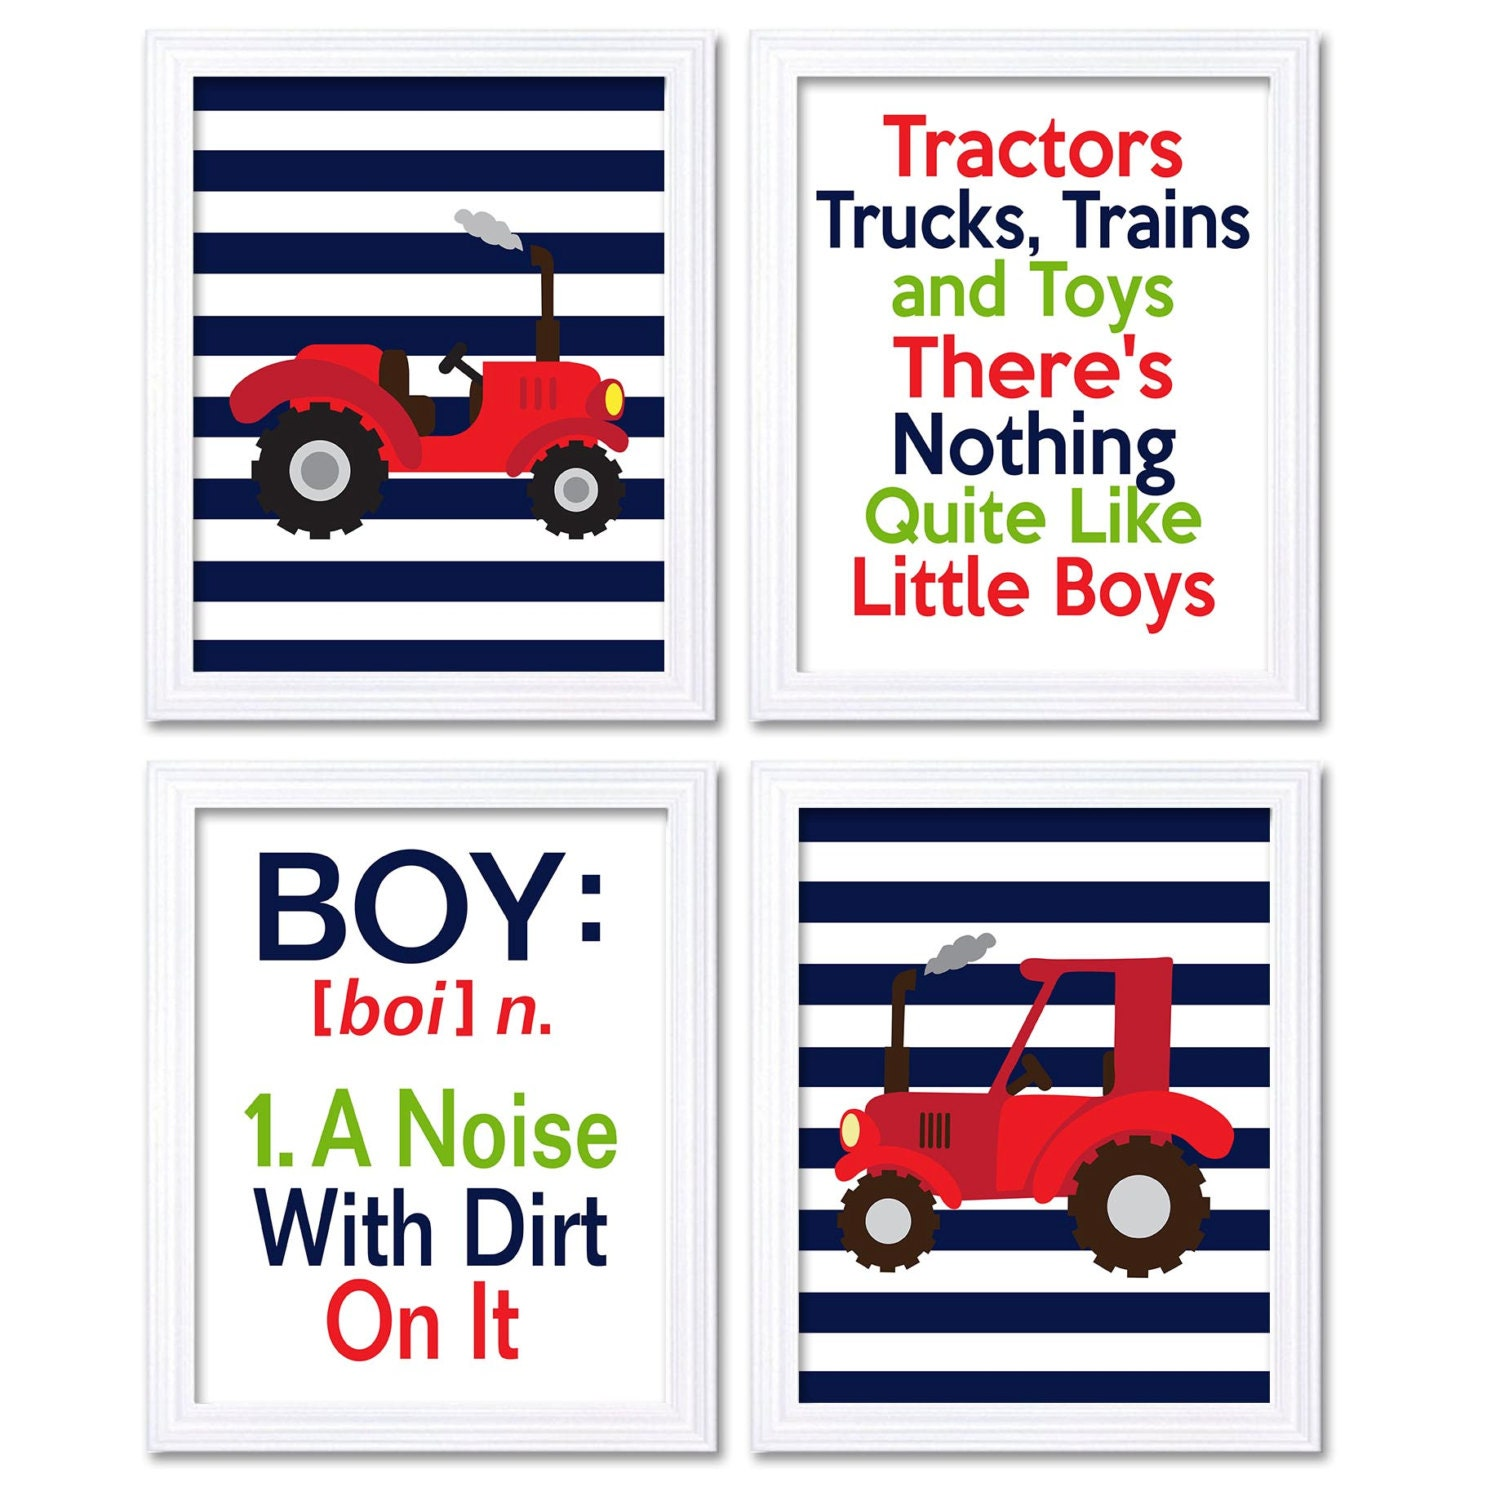 Nursery Art Tractors Trucks Toys Theres Nothing Quite Like Little Boys Prints Set of 4 Navy Blue Red